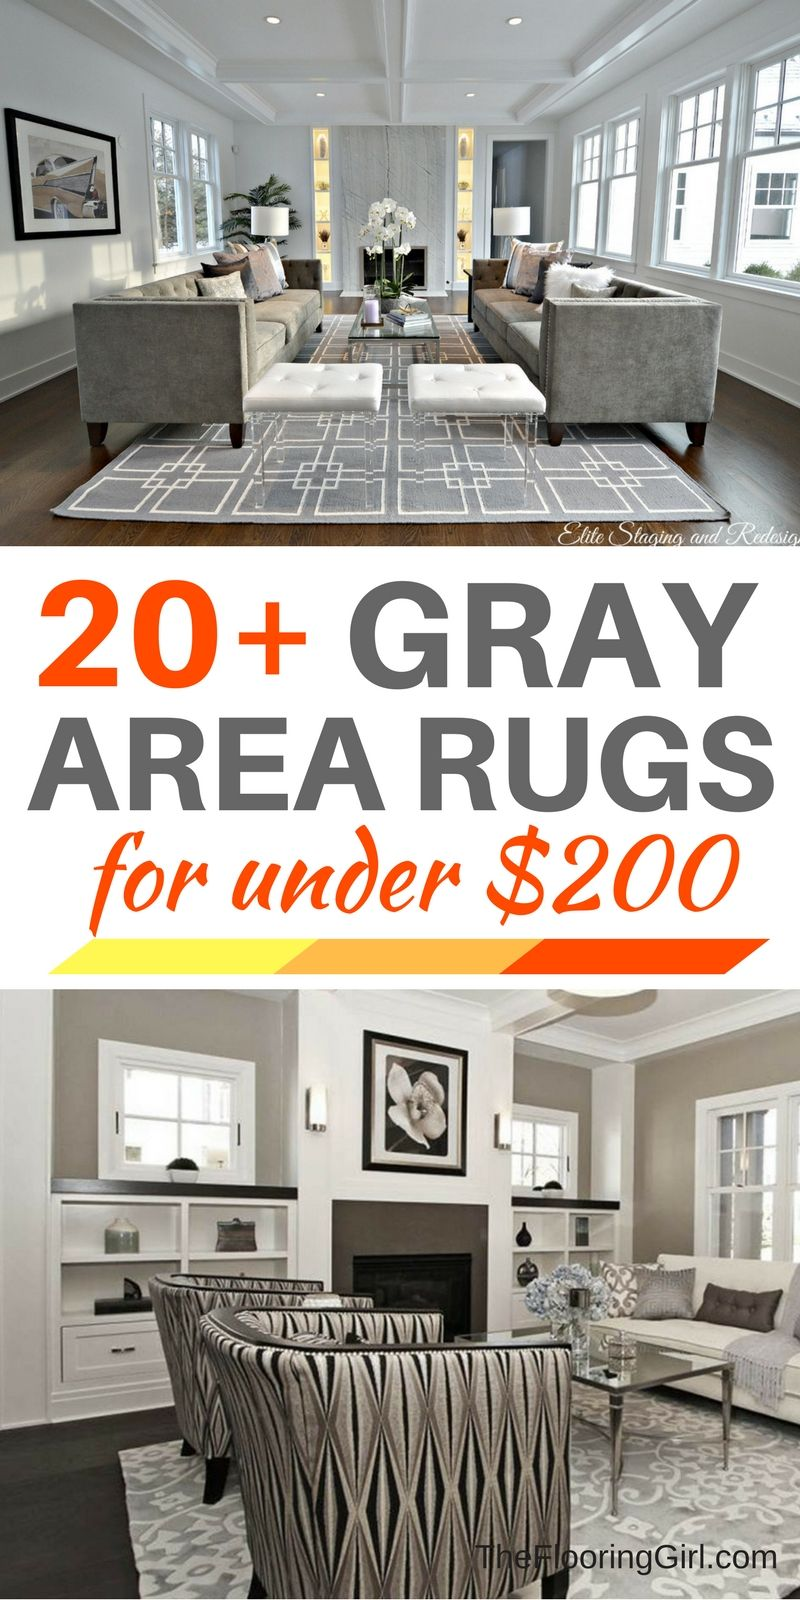 The 10 Best Places To Buy Area Rugs Online With Images Home